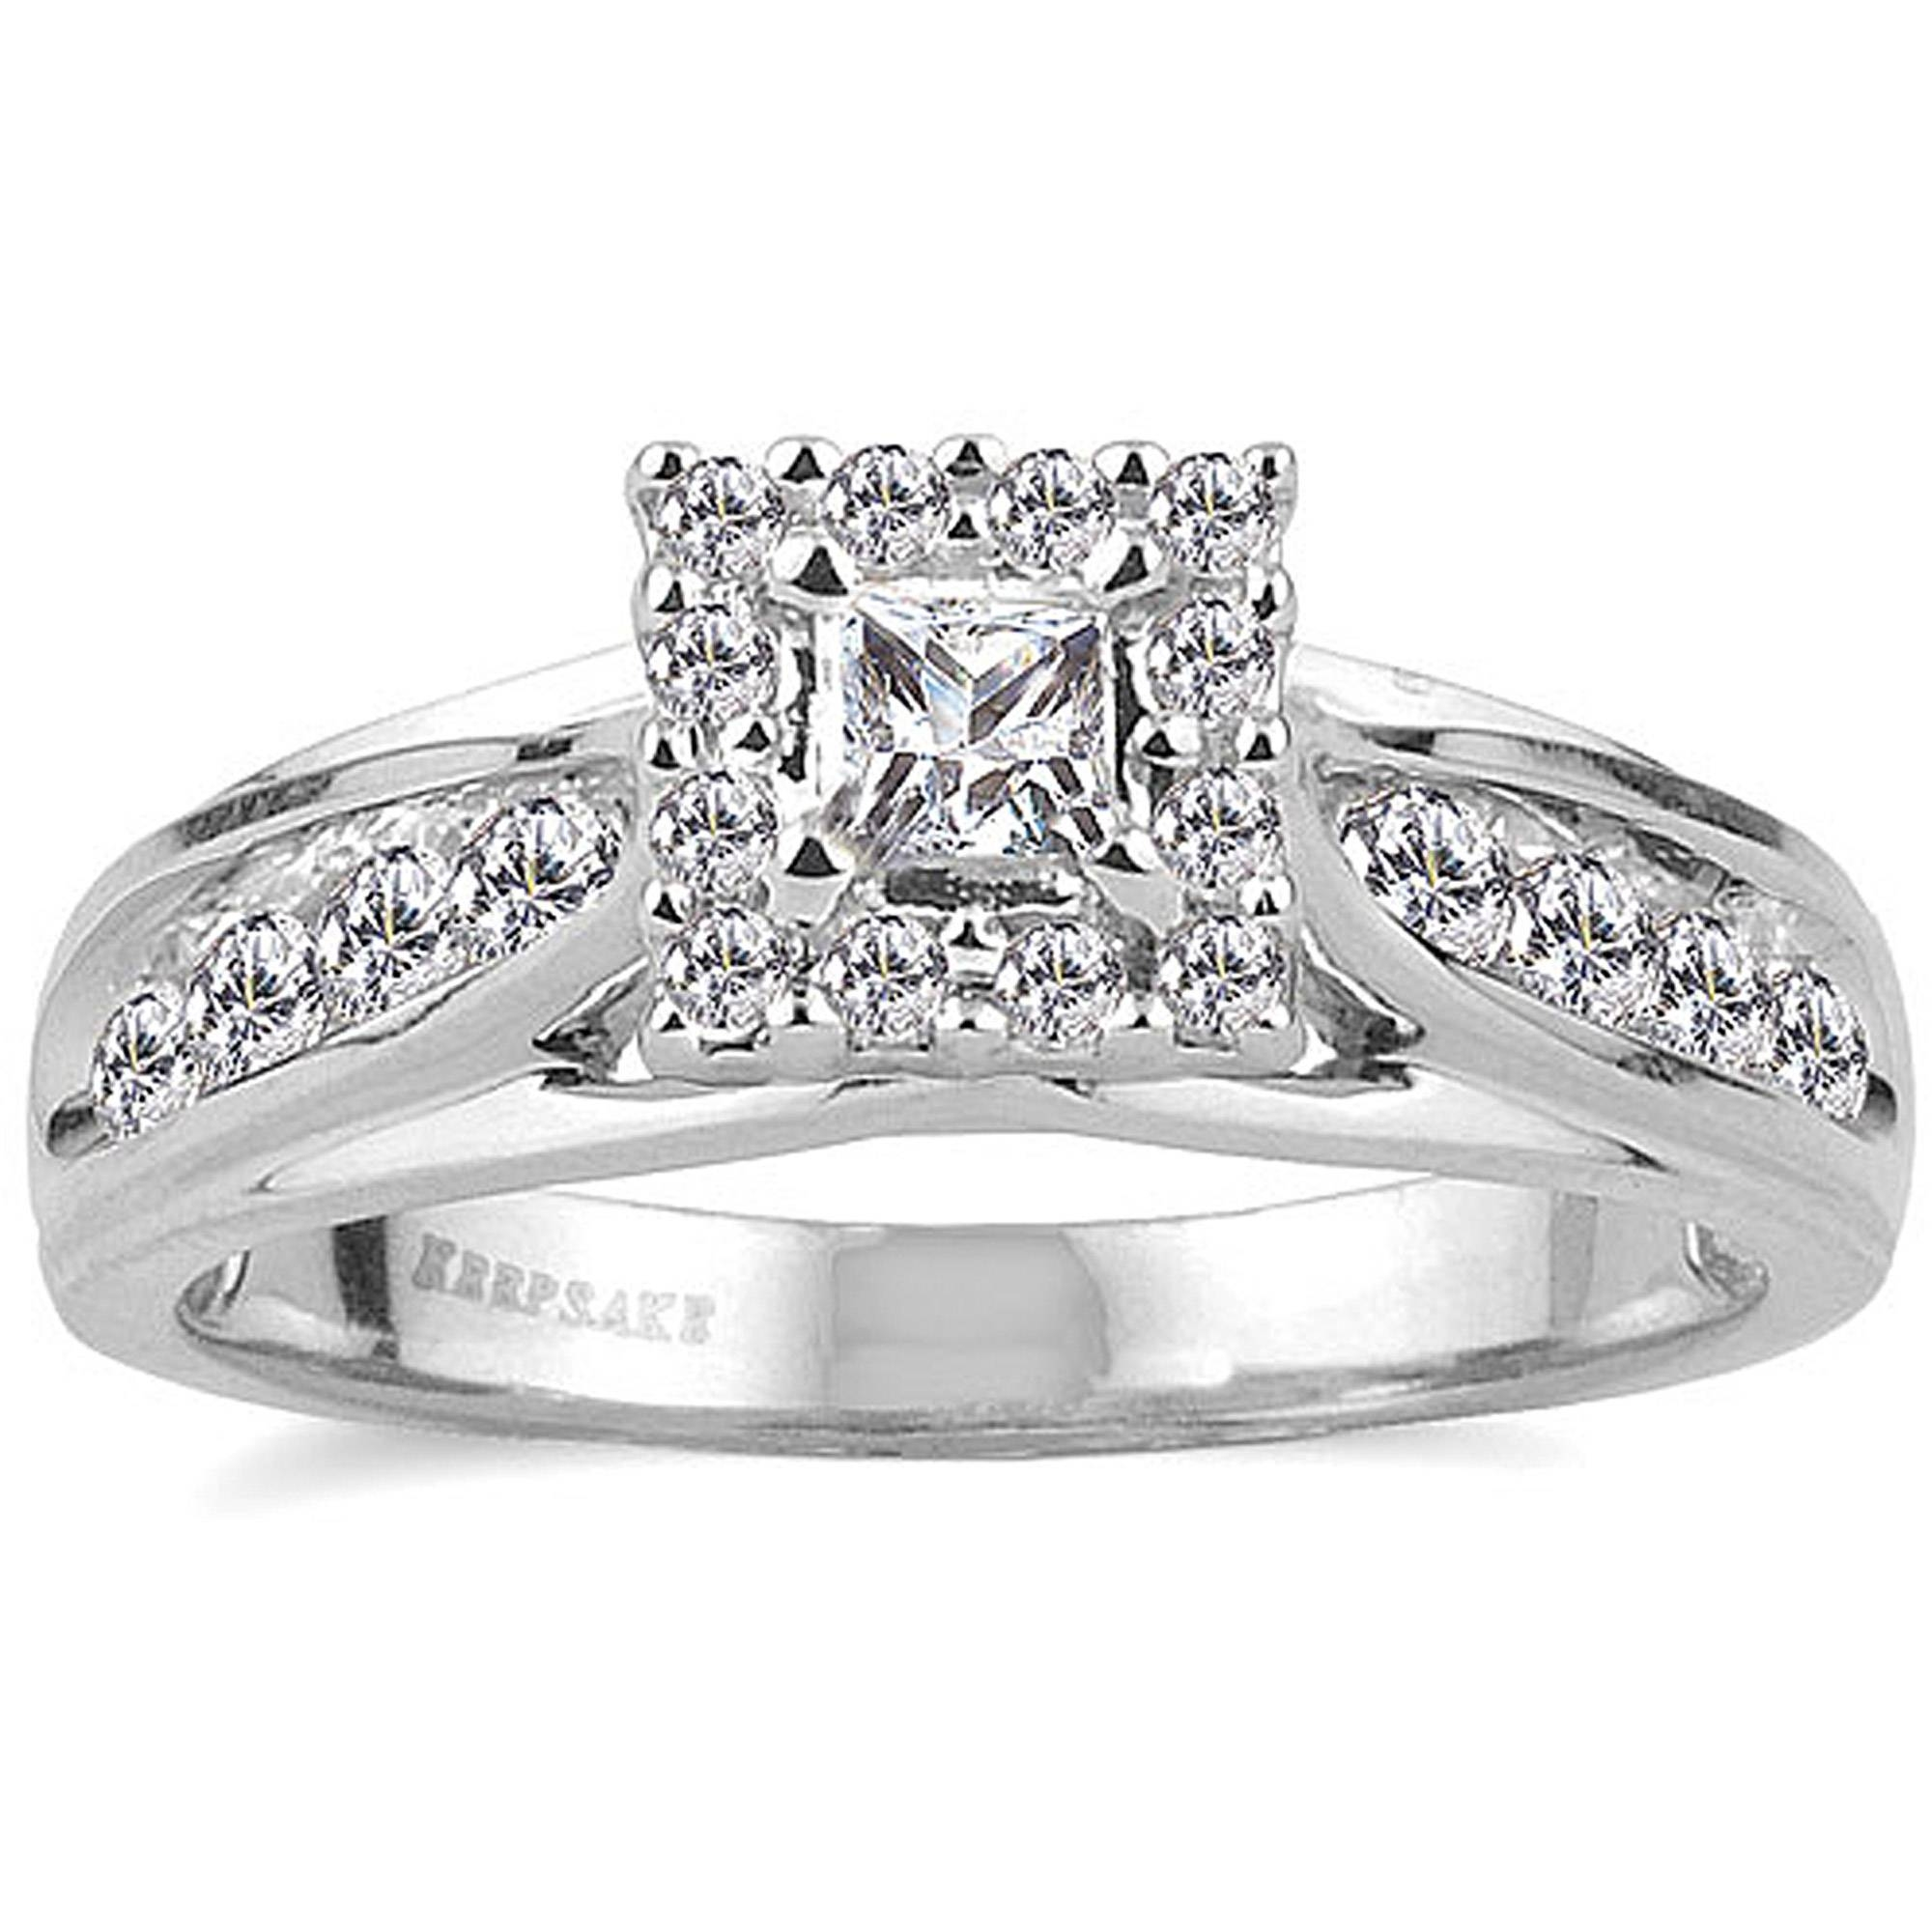 Walmart Wedding Rings | Wedding Ideas In Walmart White Gold Wedding Bands (View 10 of 15)